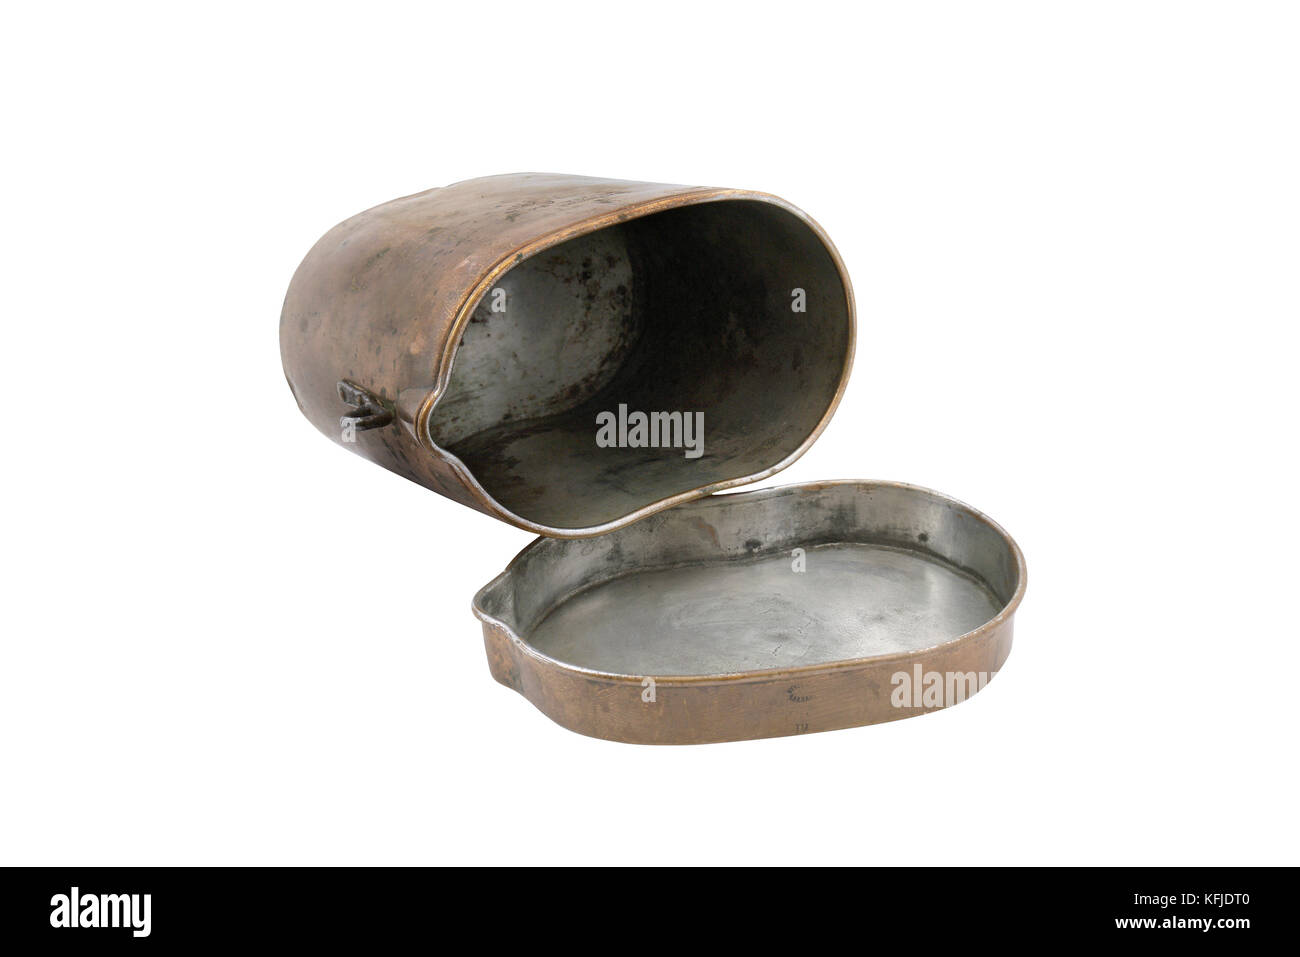 Copper mess-tin (pot) of Russian soldiers during WWI (1914-1918). Russia. - Stock Image